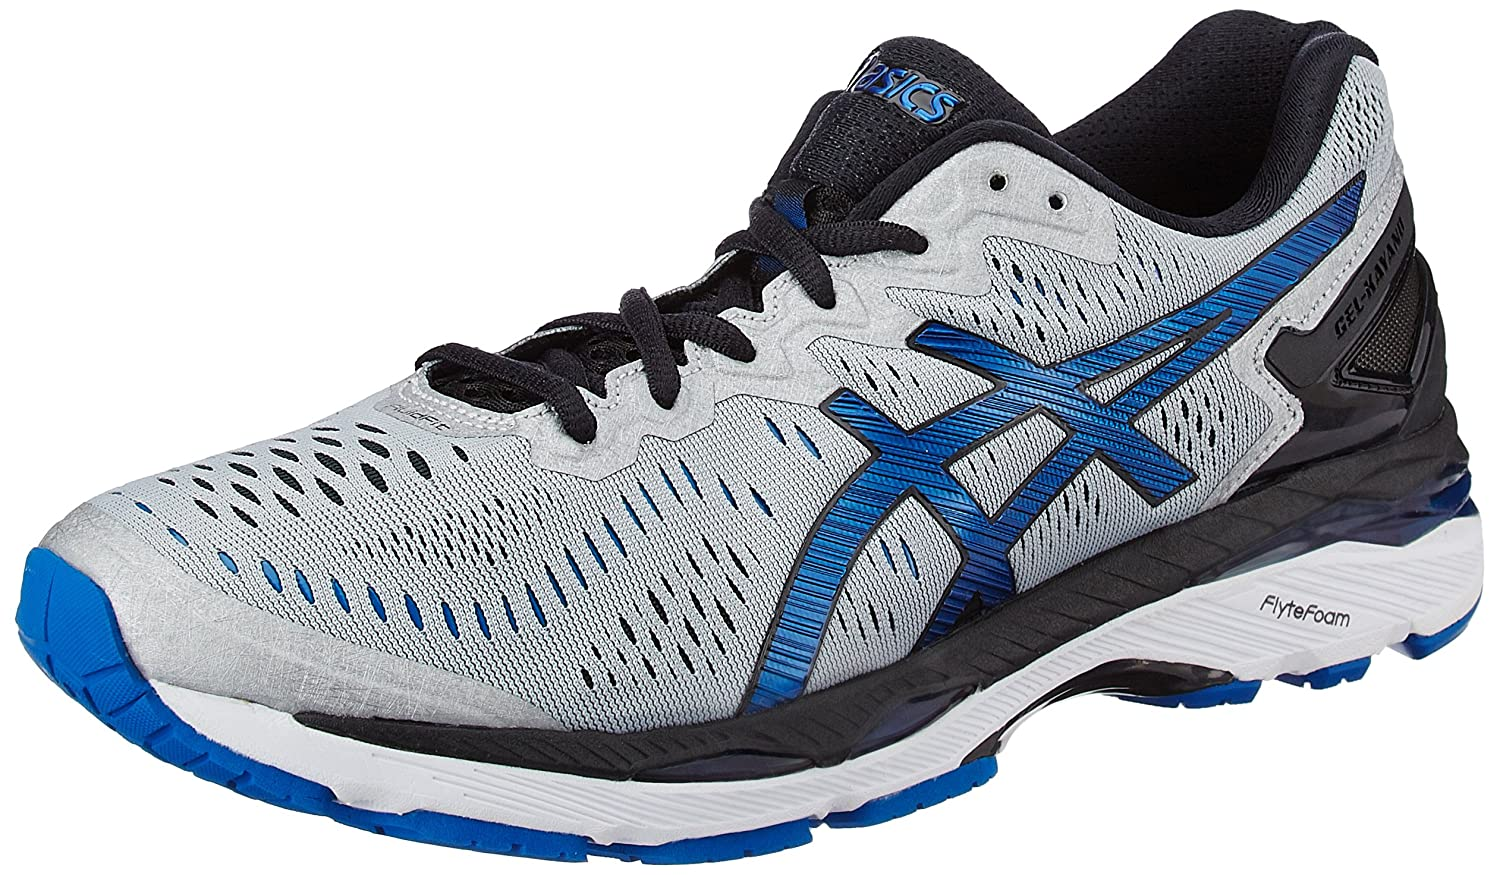 asics shoes ranked gaming download manager 647449